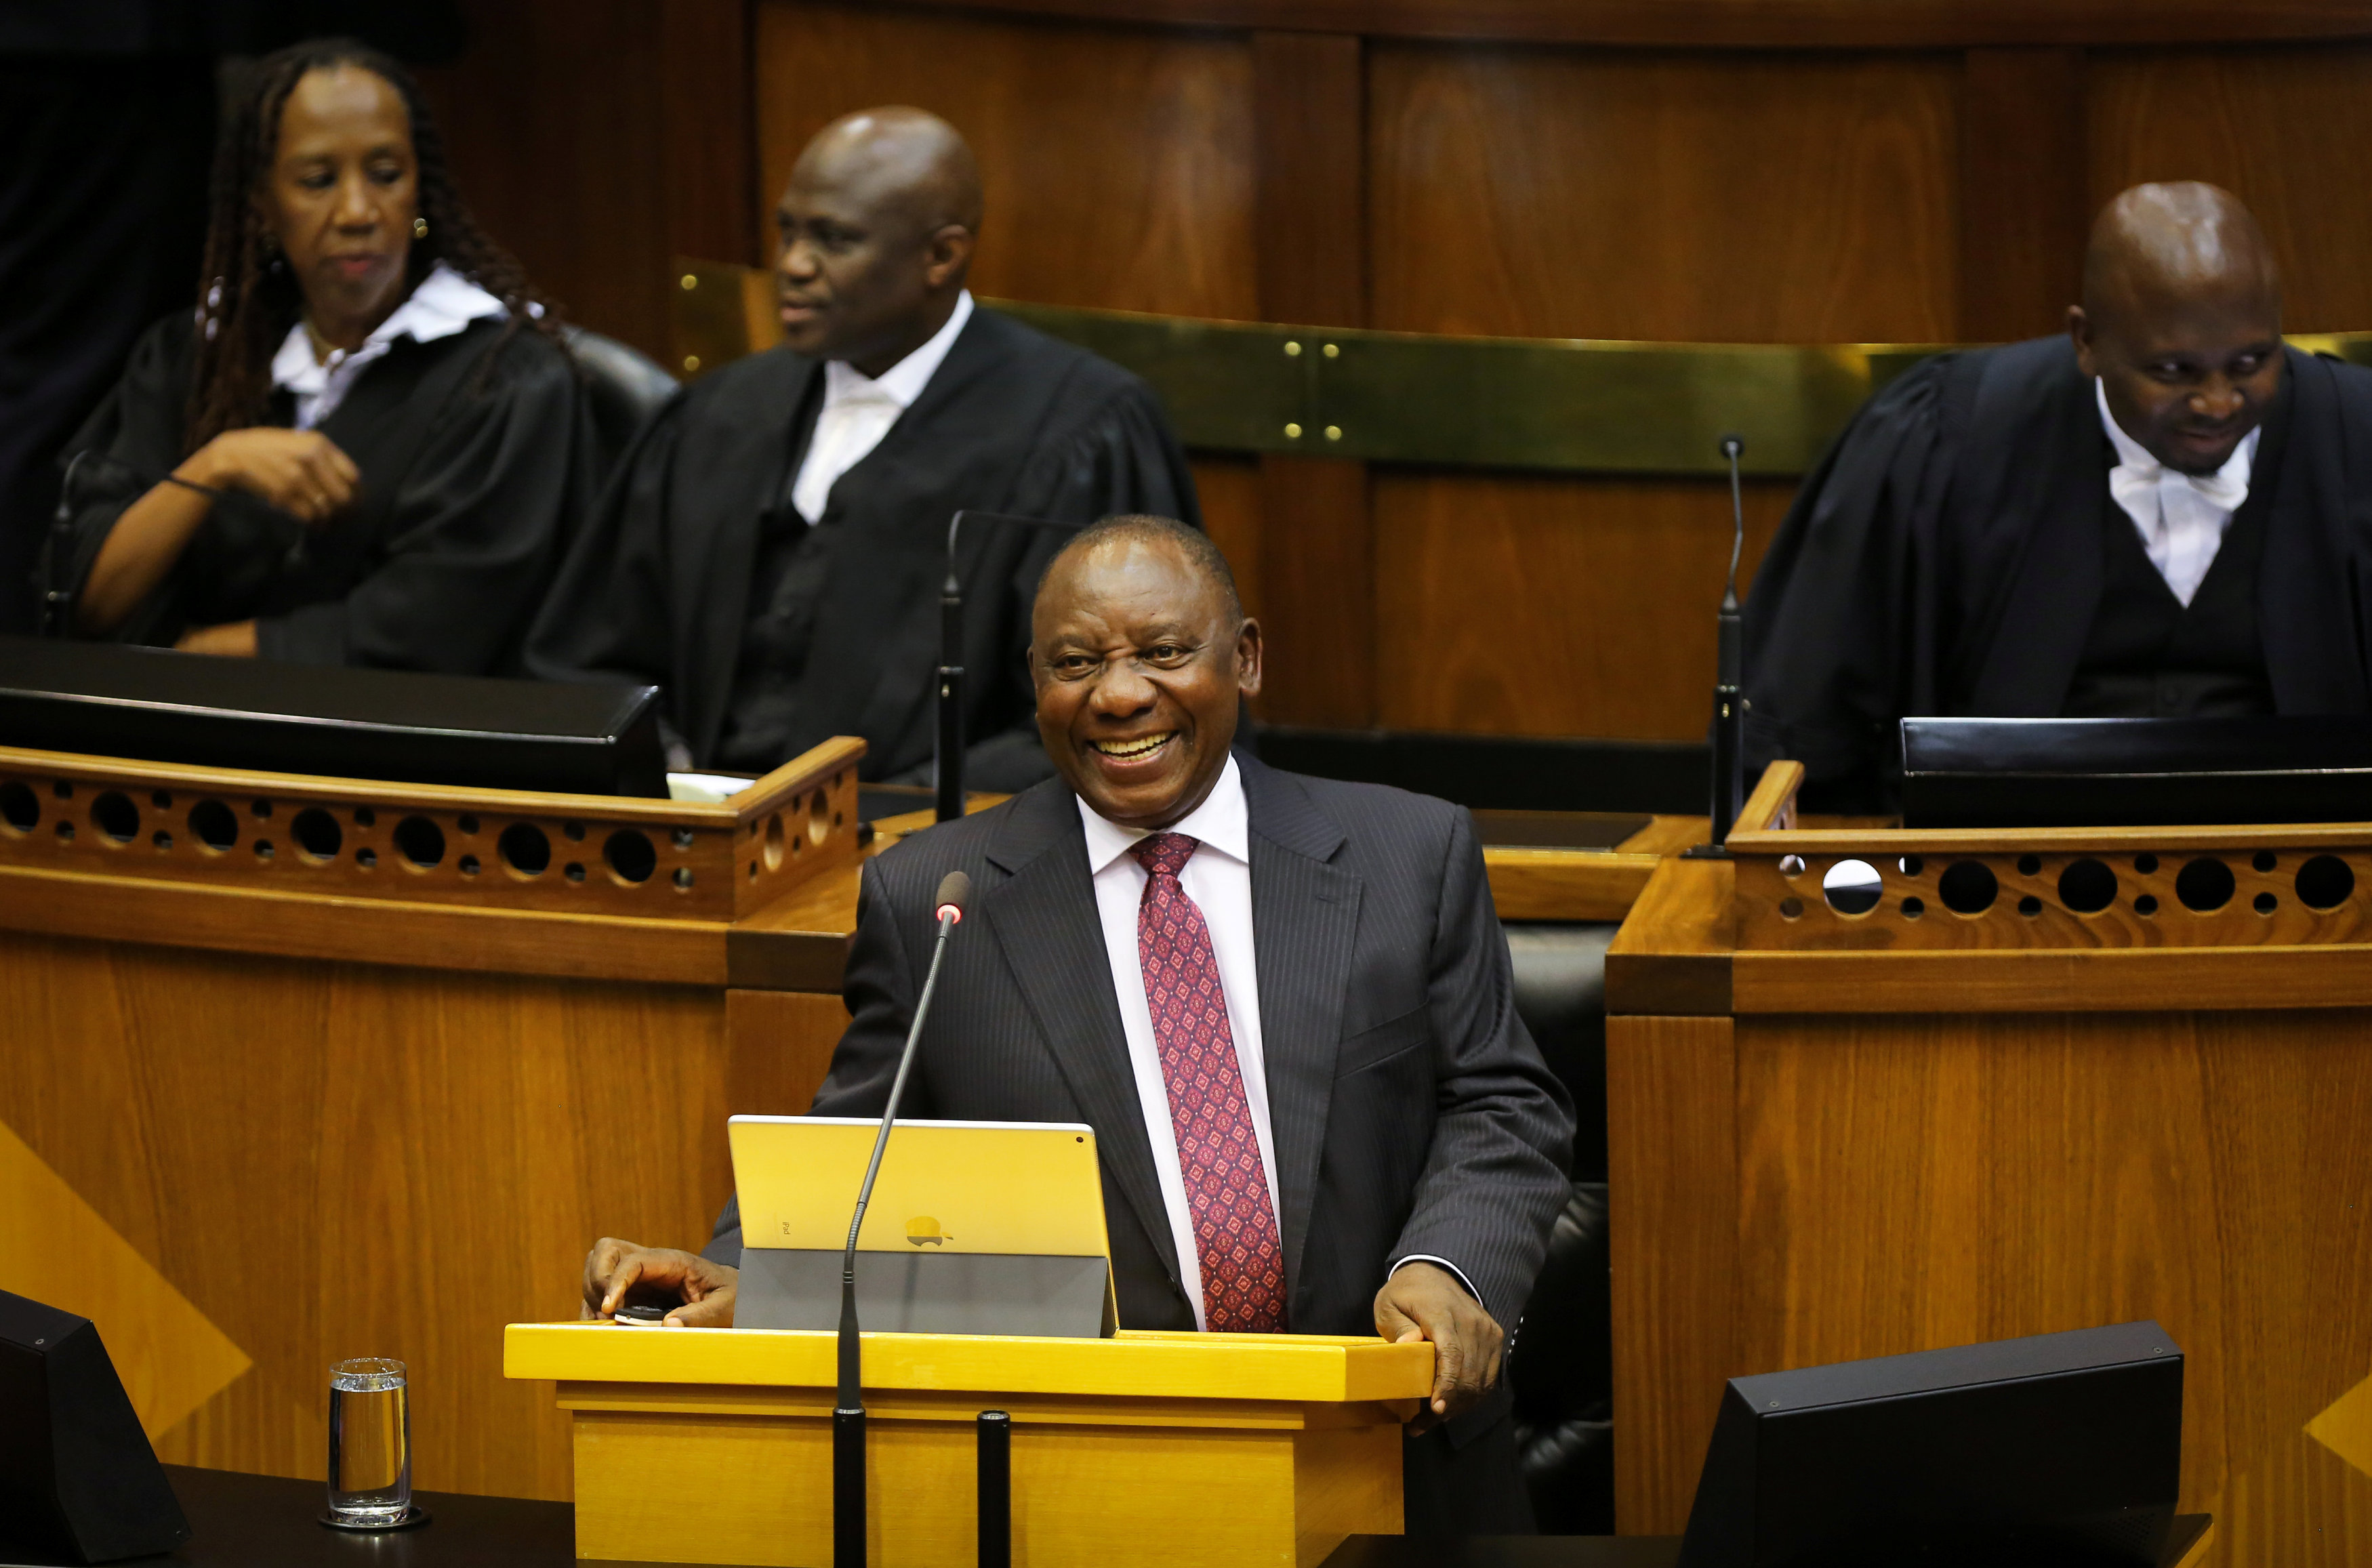 South African President Cyril Ramaphosa speaks in parliament in Cape Town, South Africa February 20, 2018